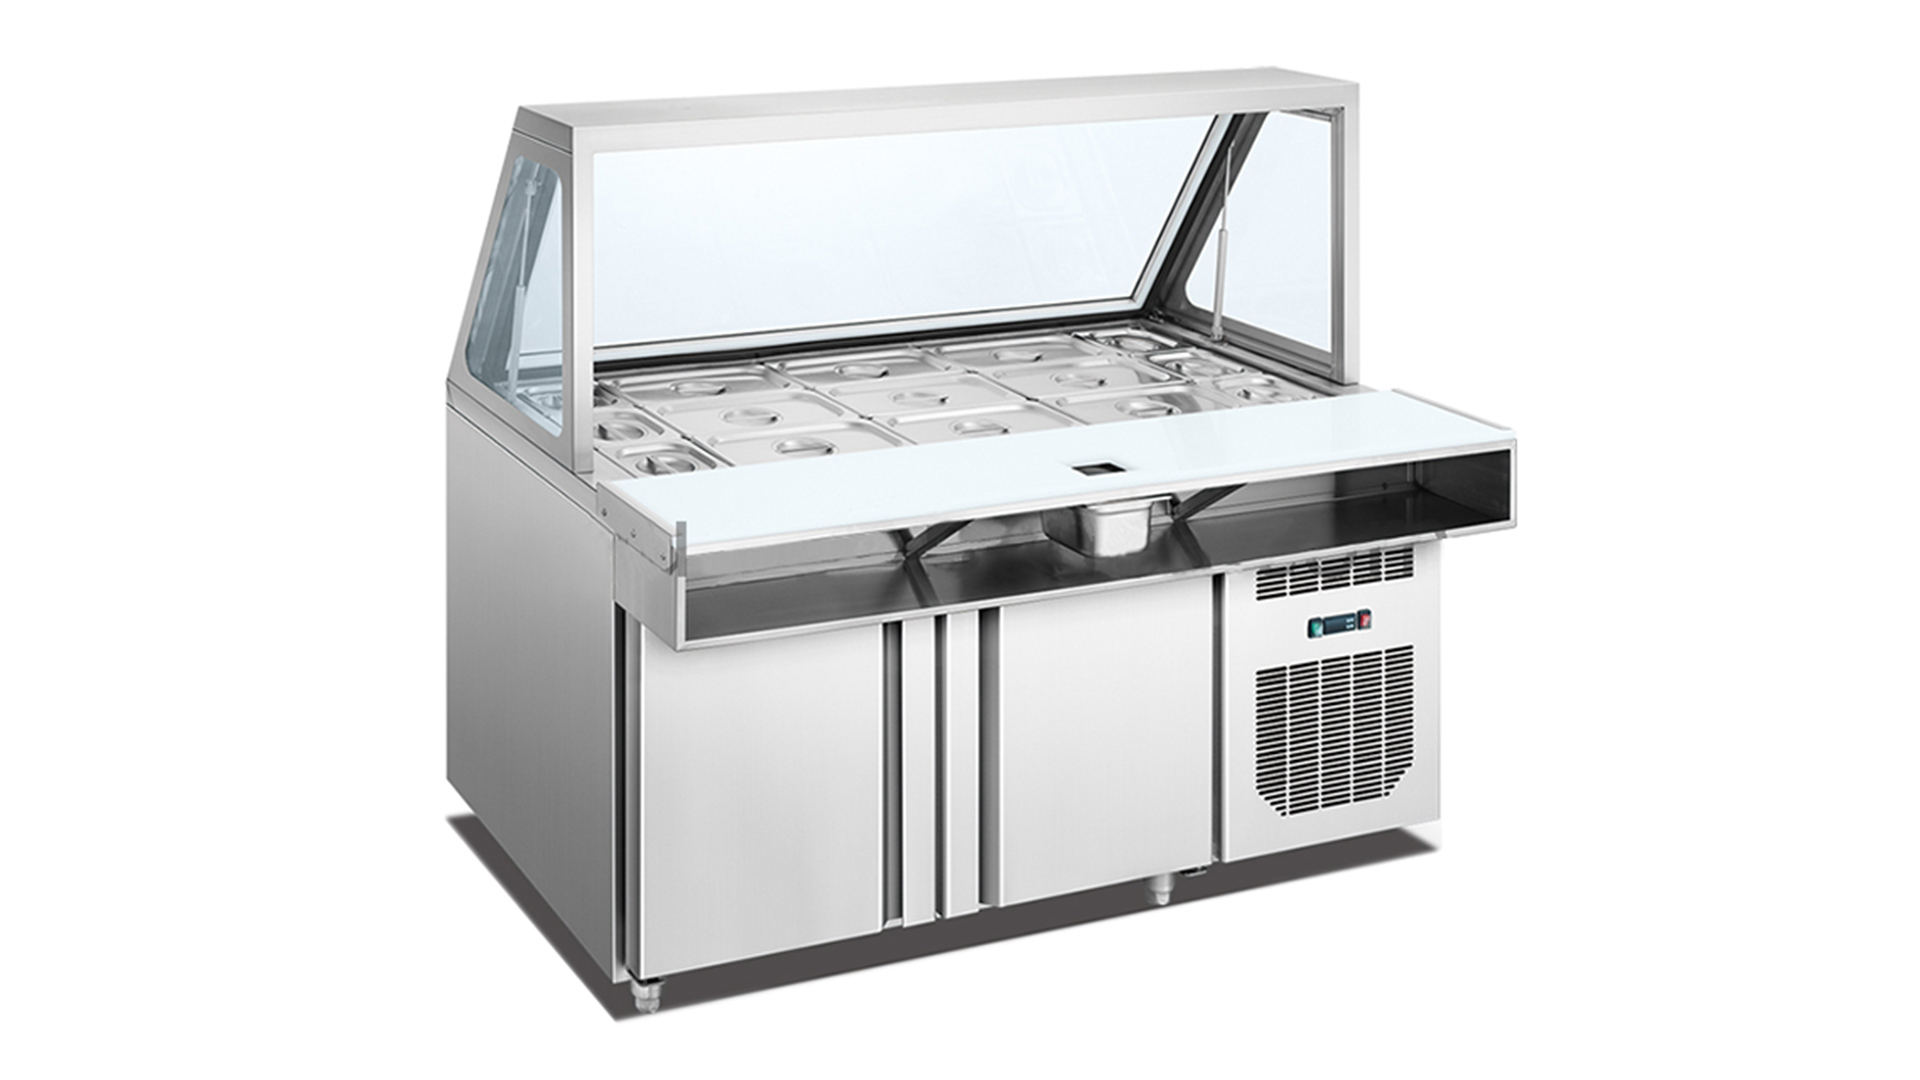 Air cooling type salad bar display counter/chiller